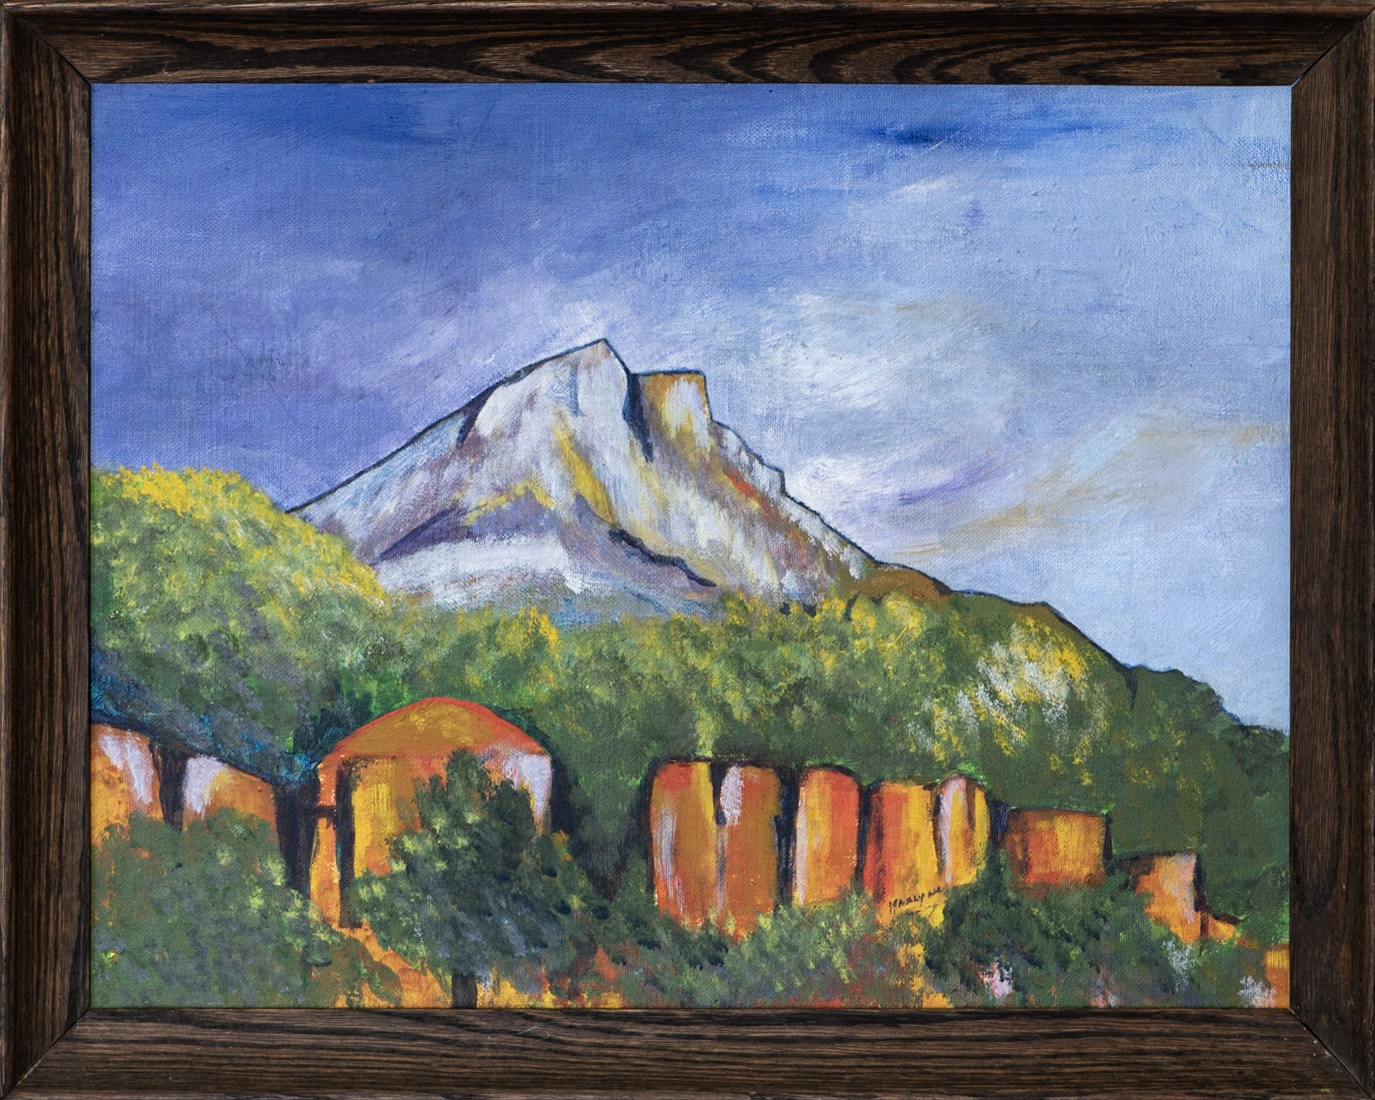 Iconic, Personified (Cezanne)